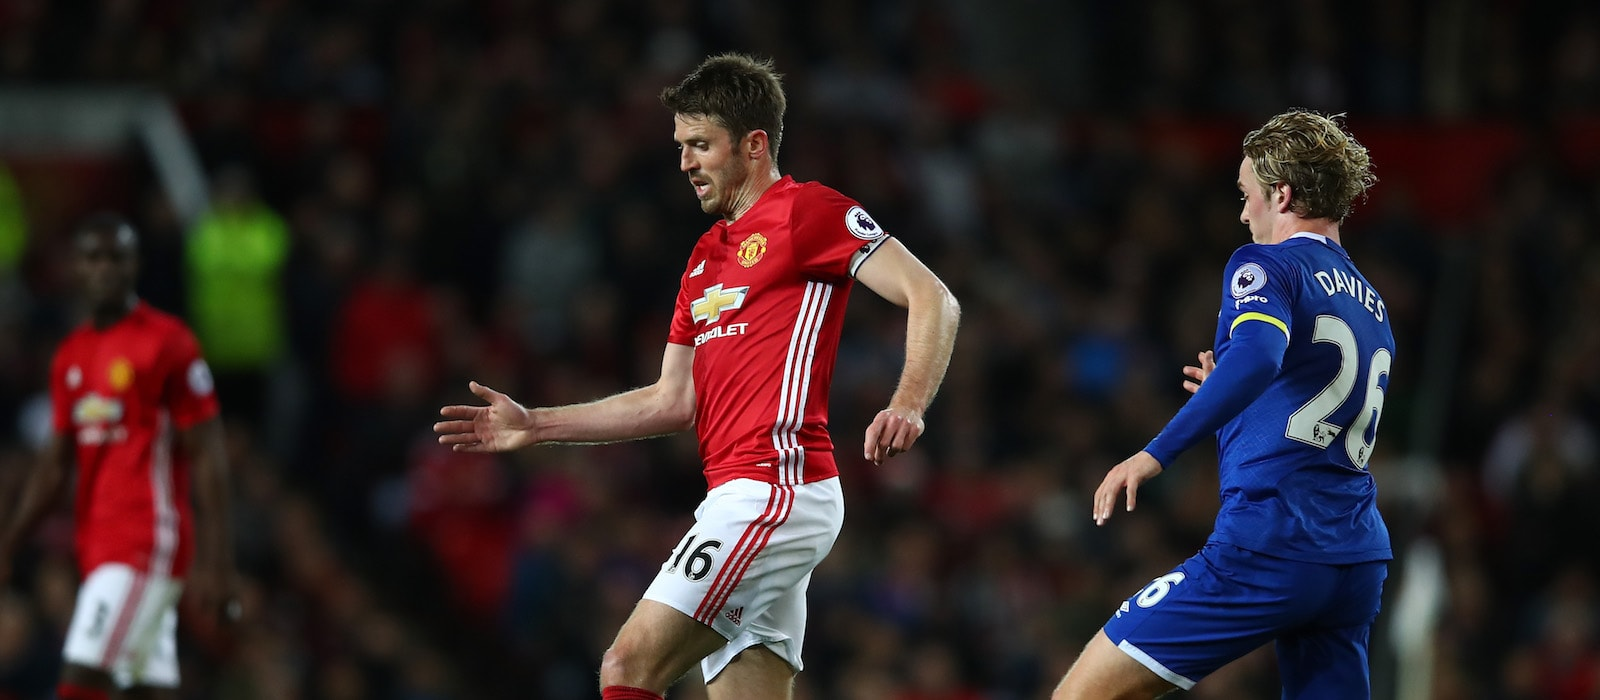 Michael Carrick urges Manchester United to improve in the Premier League this season